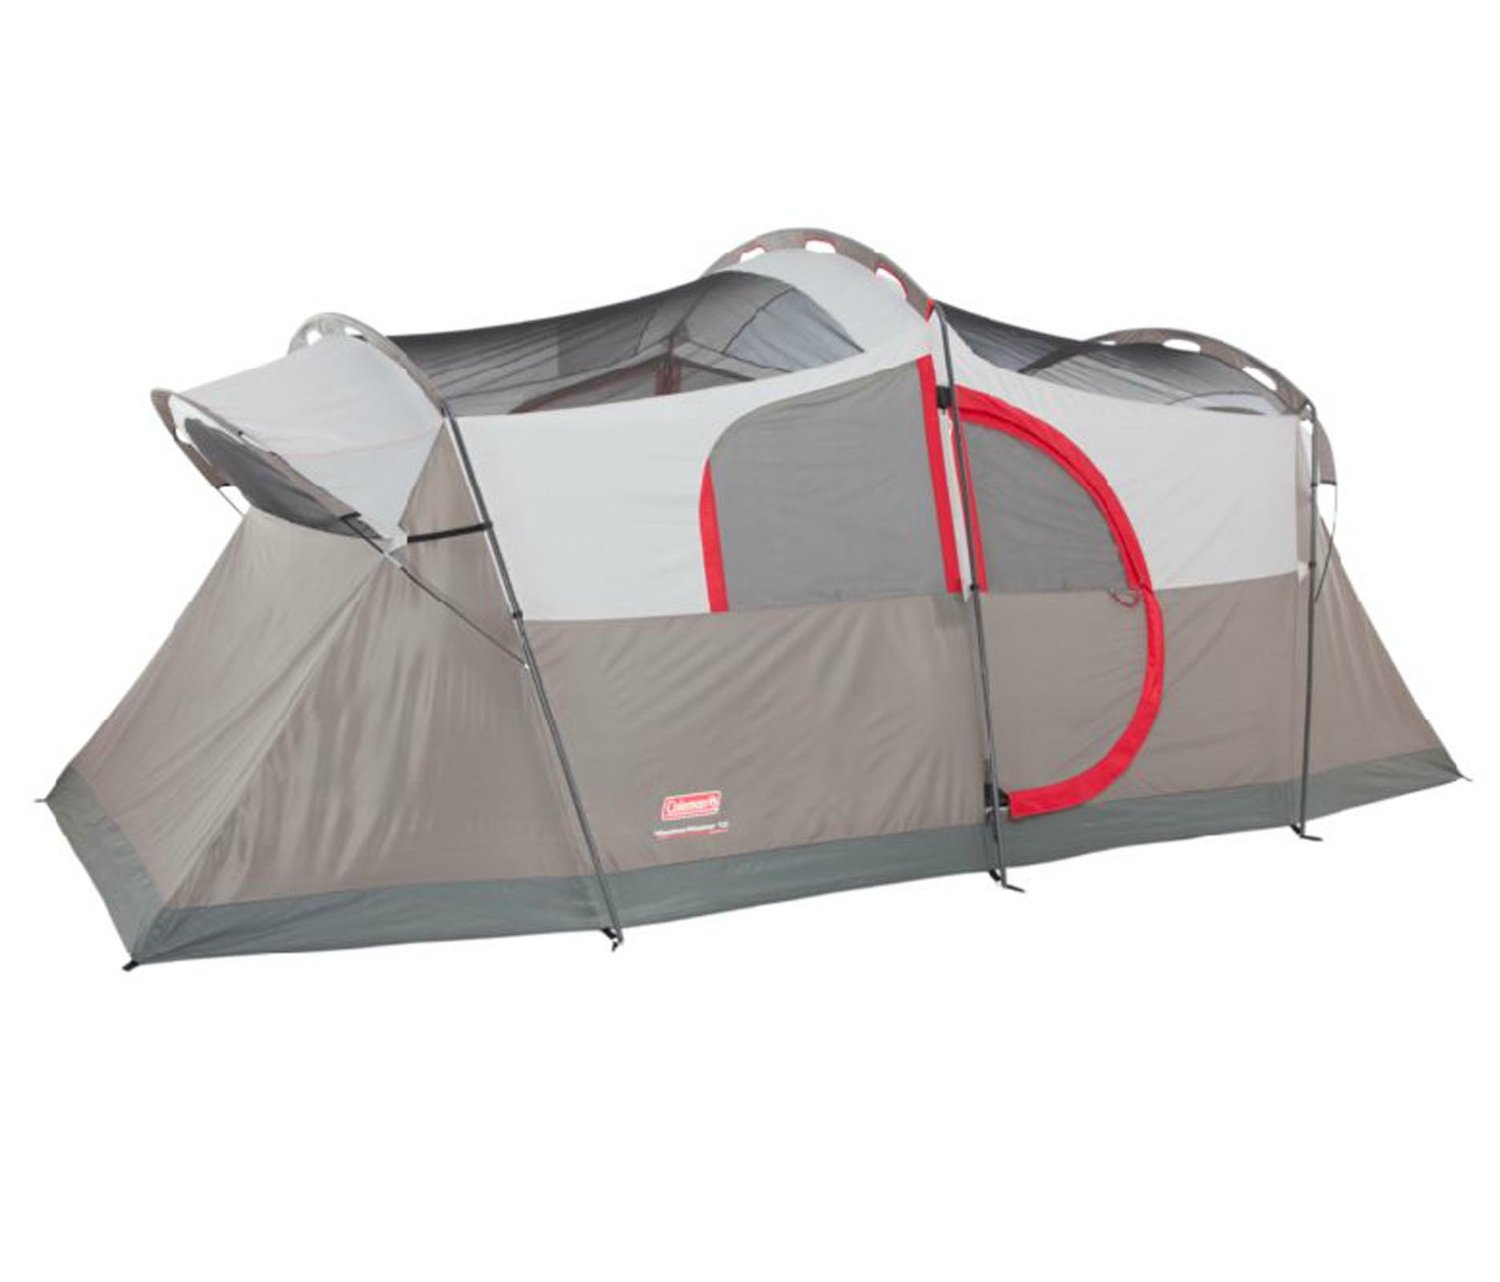 Coleman Weathermaster 10 Person Hinged Door Tent Review - Traveling Monarch  sc 1 st  Traveling Monarch & Coleman Weathermaster 10 Person Hinged Door Tent Review ...